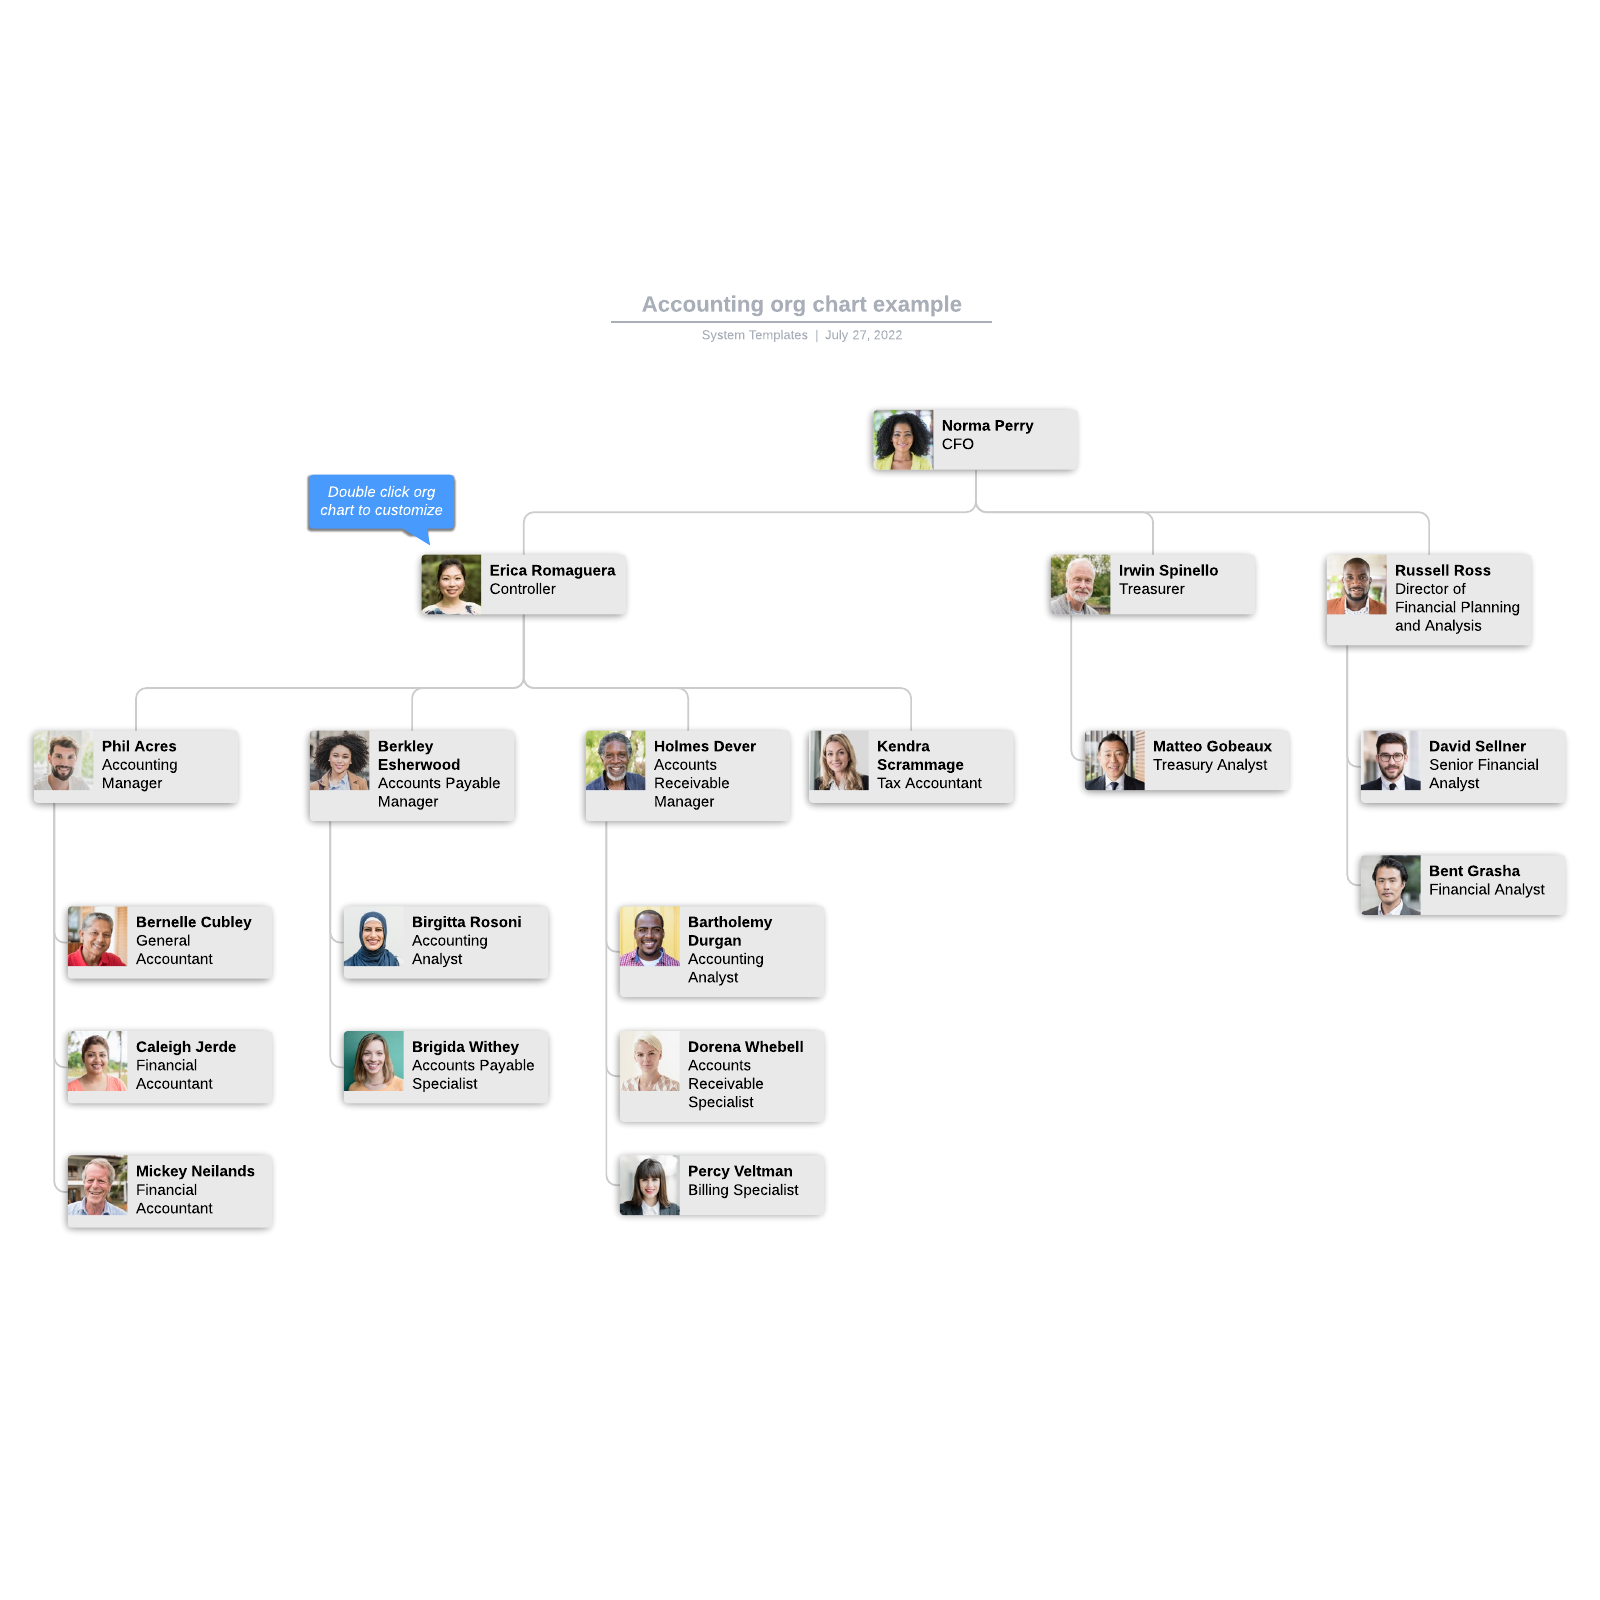 Accounting org chart example